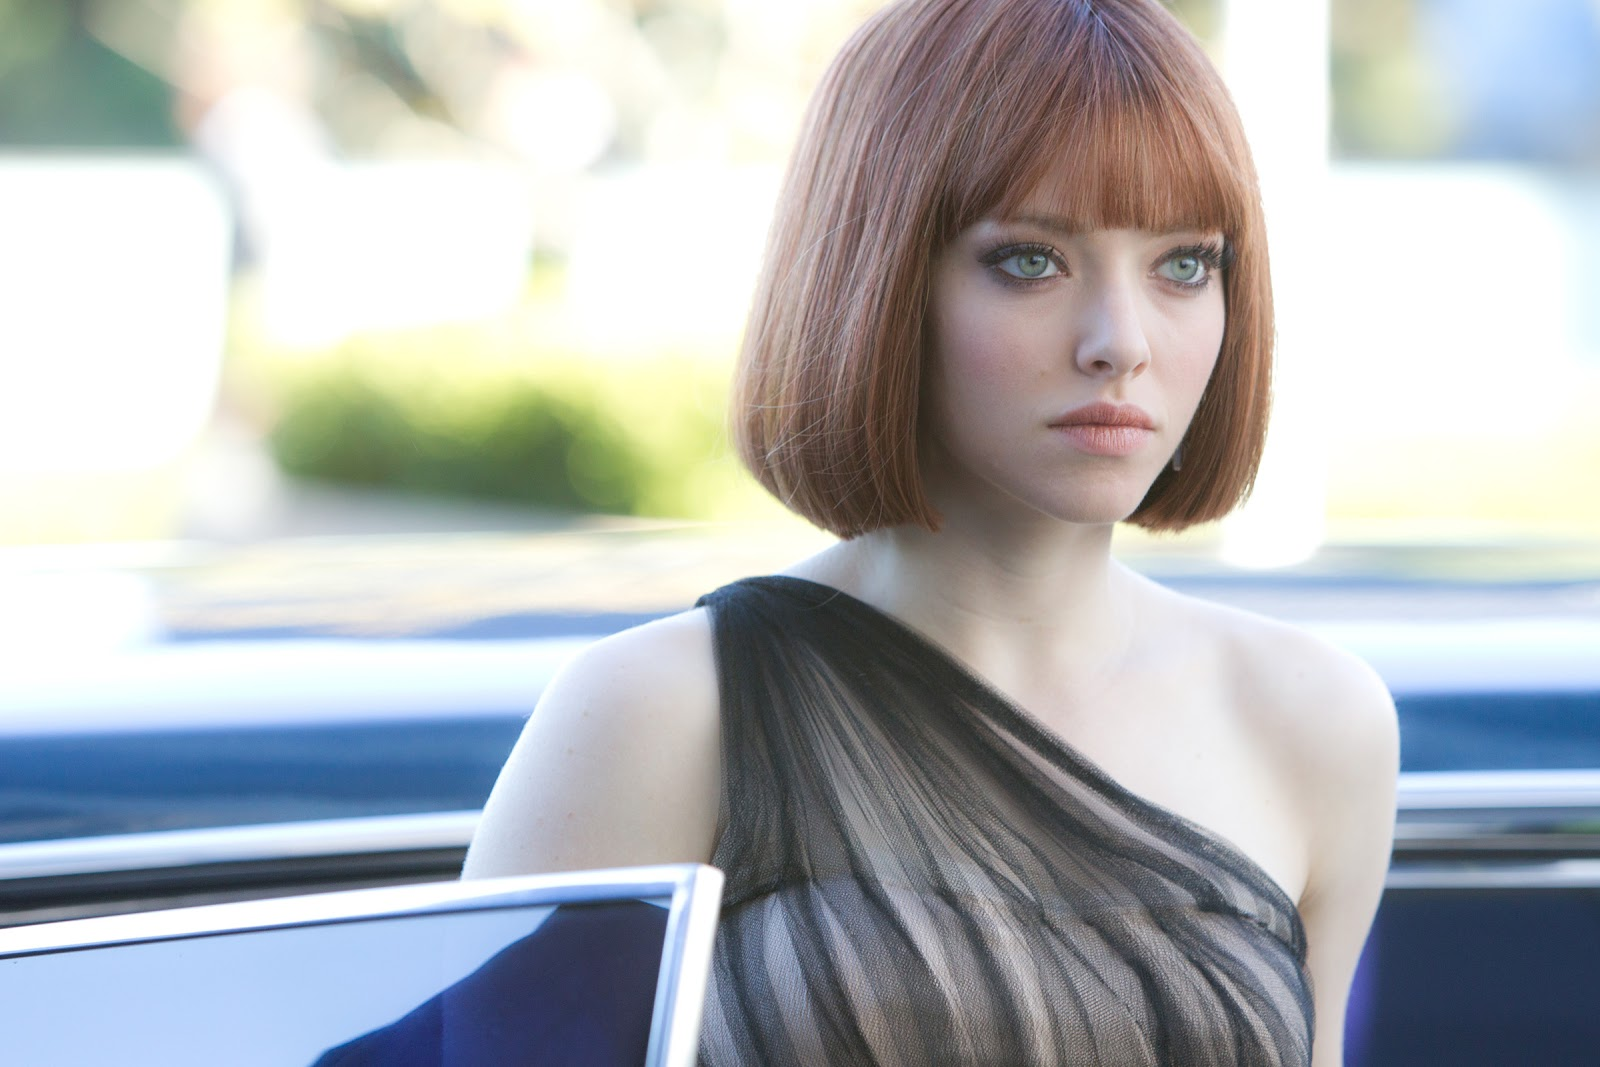 LOVE Amanda Seyfrieds makeup looks from the movie, In